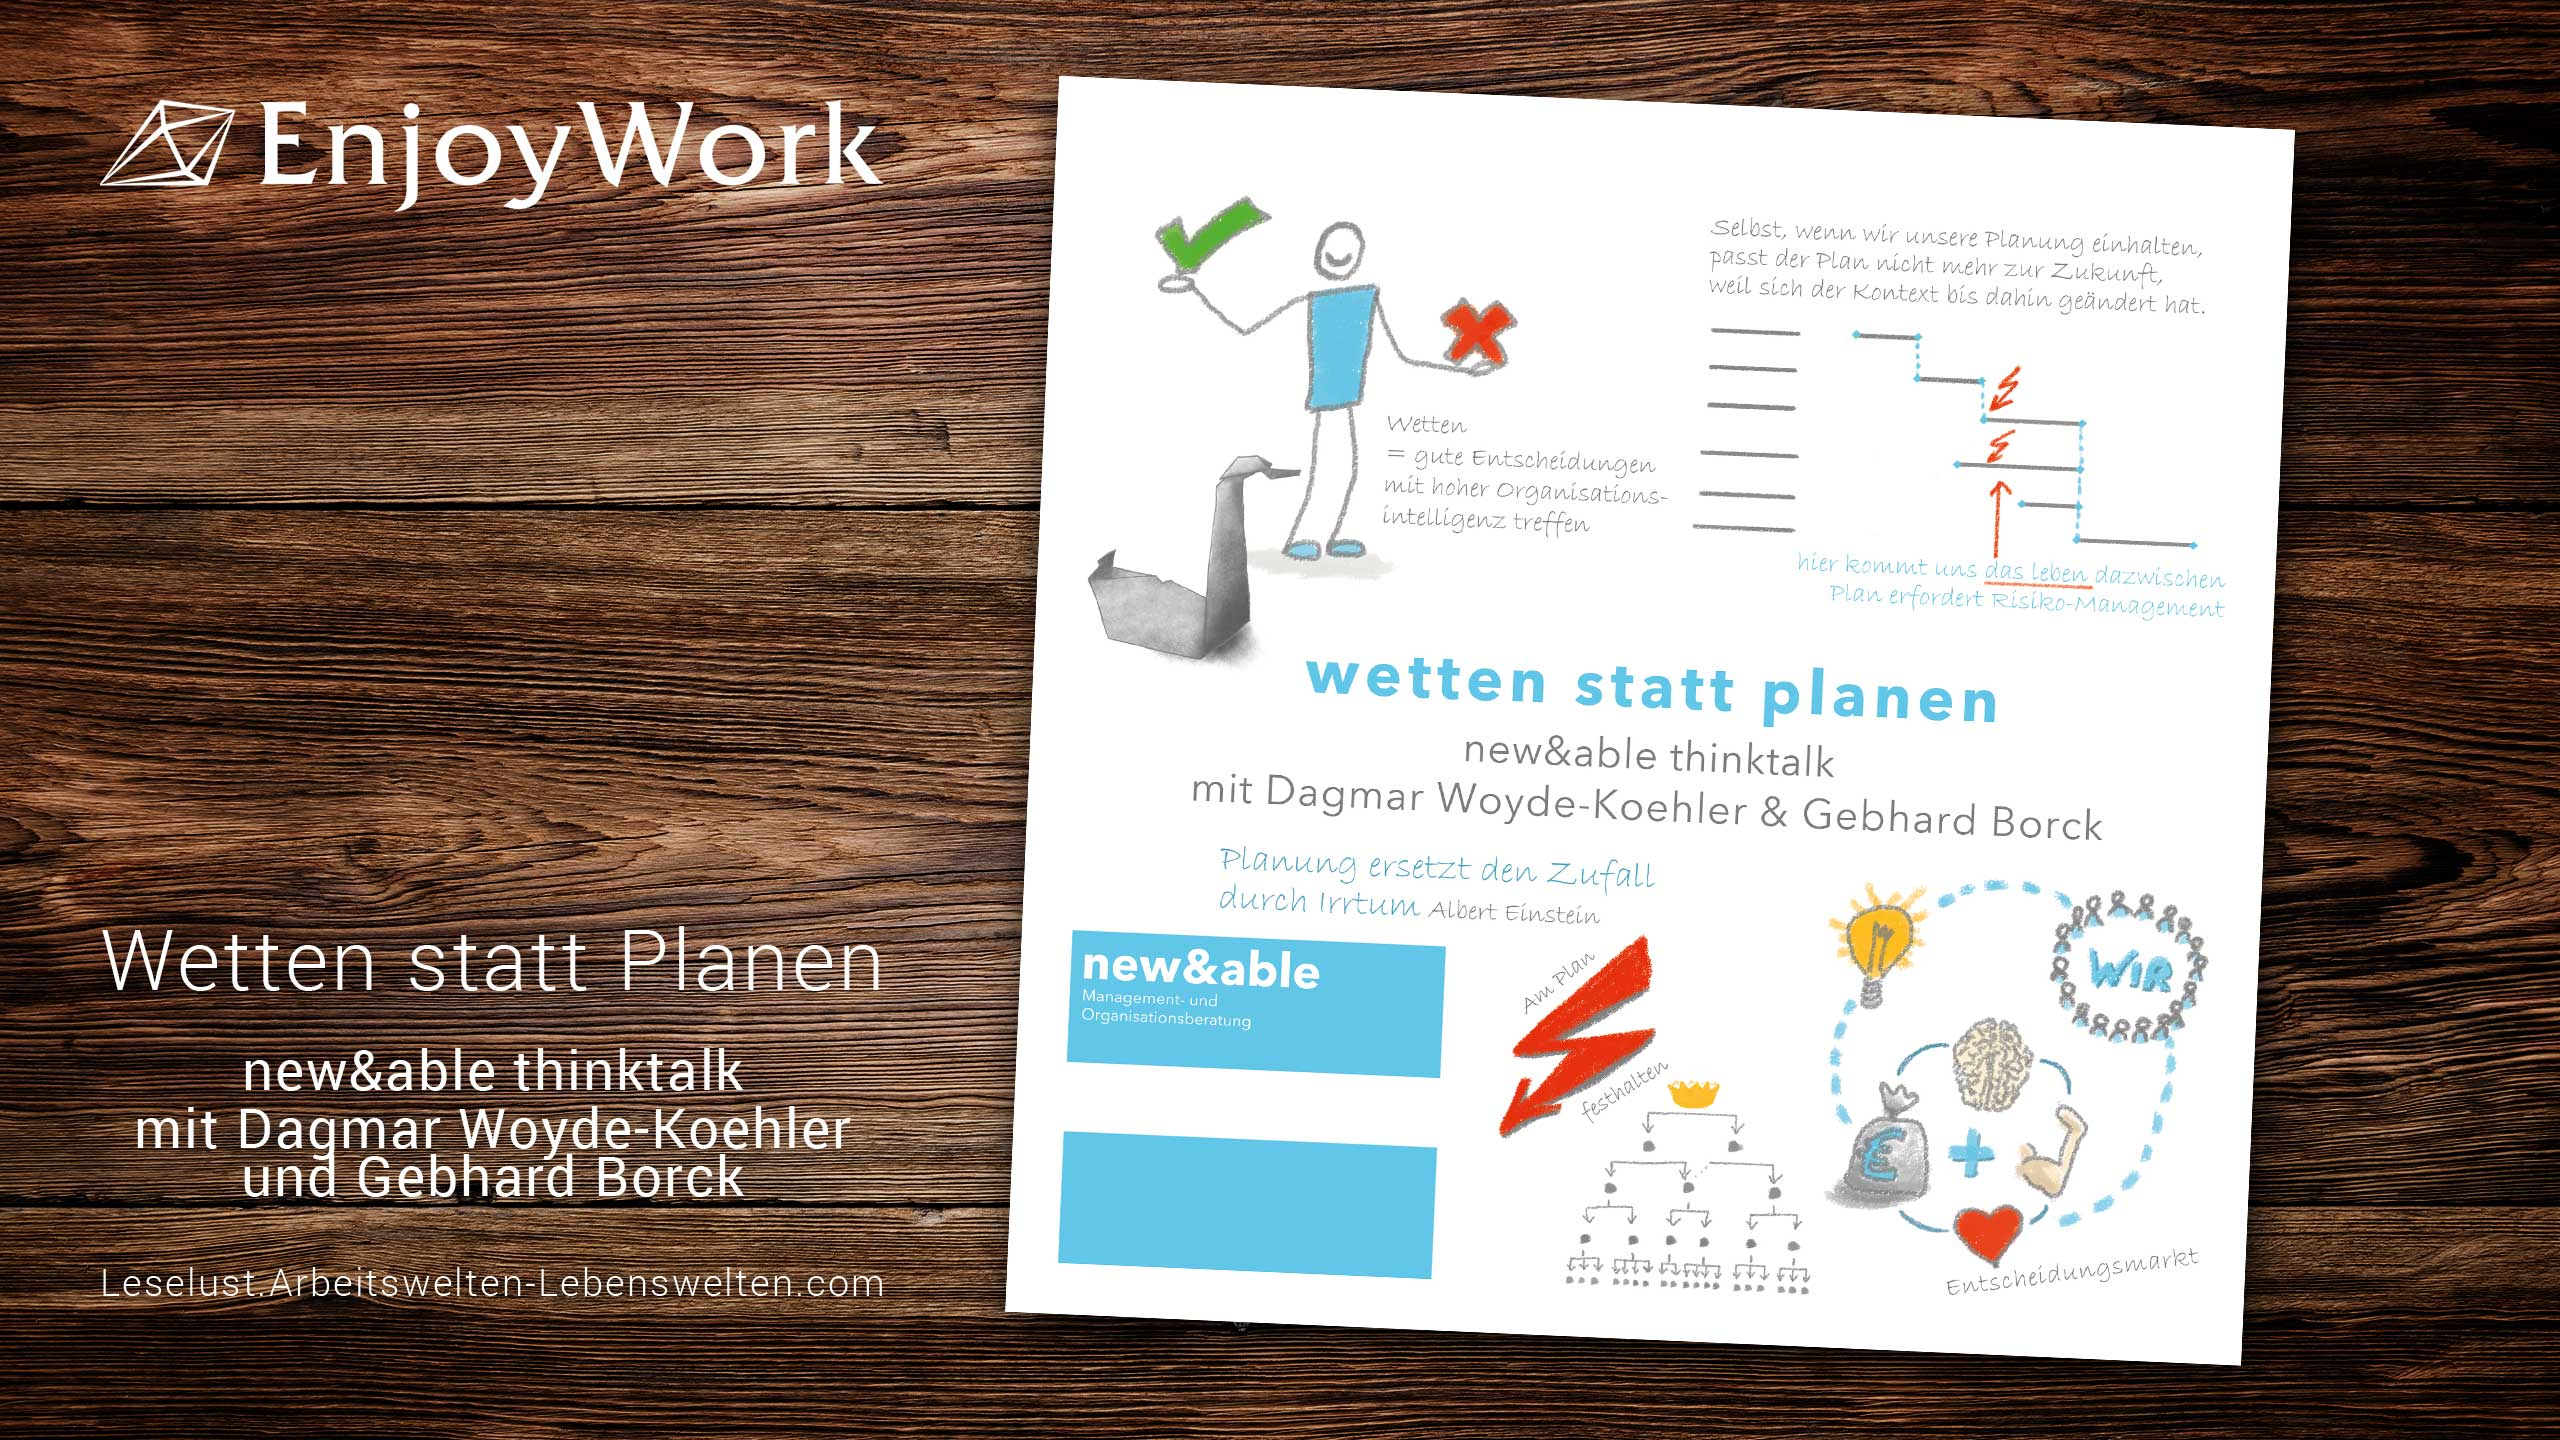 wetten statt planen. new&able thinktalk mit Dagmar Woyde-Koehler & Gebhard Borck via EnjoyWork LeseLust / copy new&able / GB Kommunikation GmbH / madiko